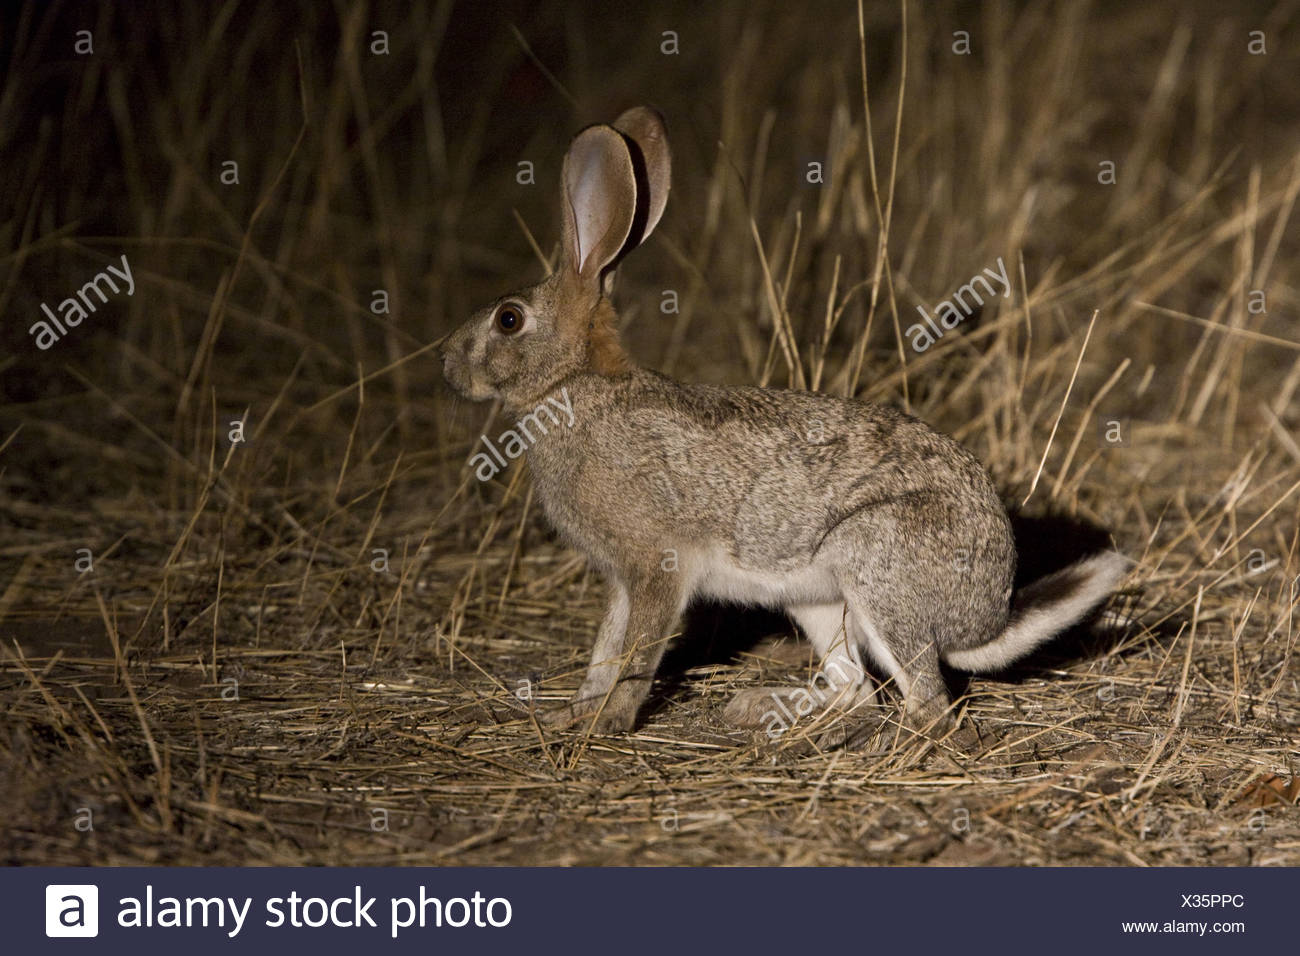 Scrub hare photographed with spot light - Stock Image